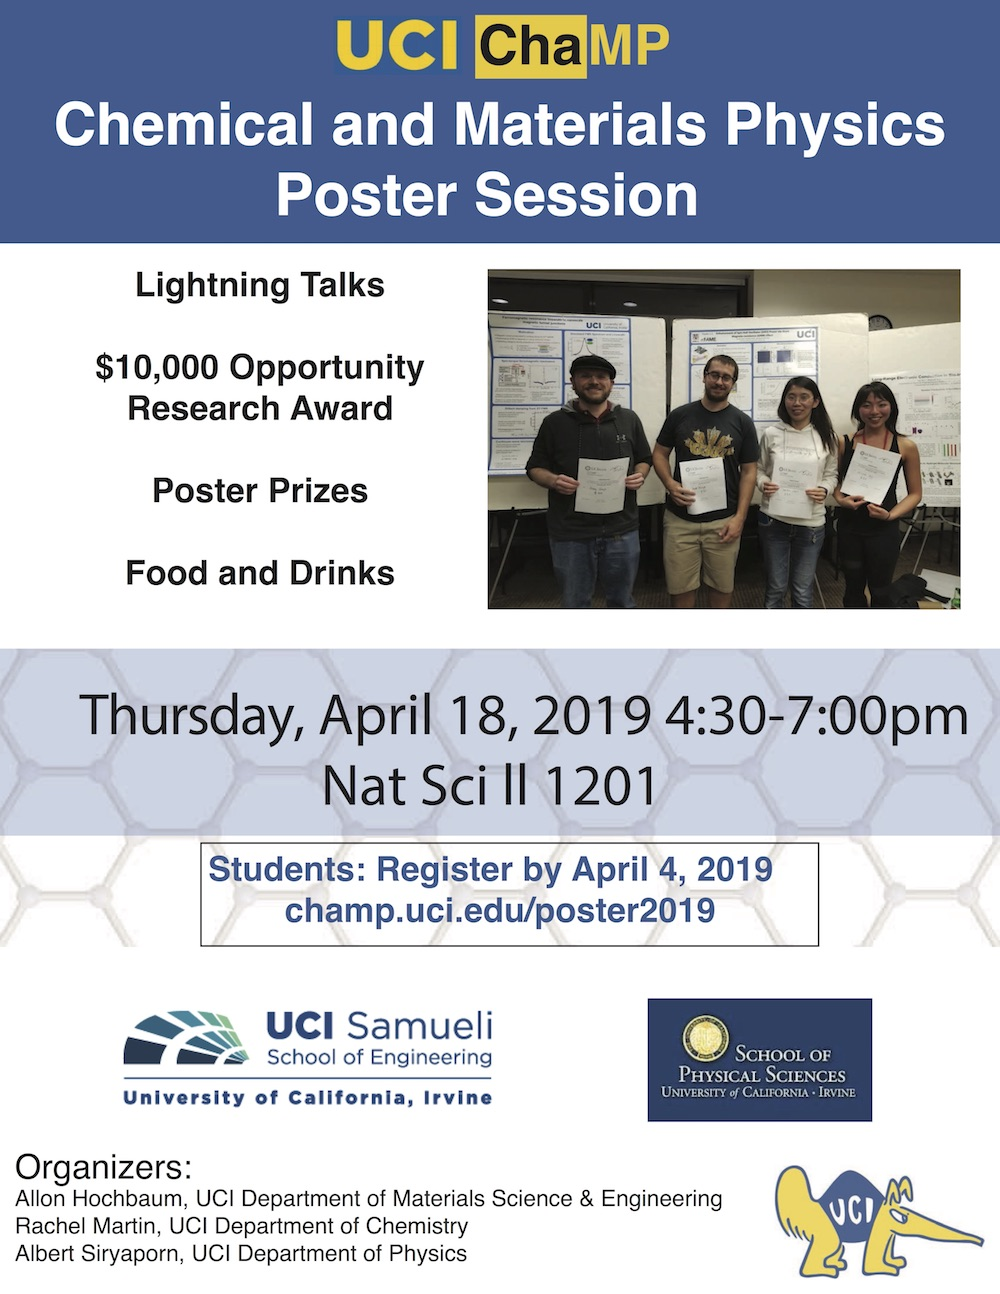 2019 ChaMP poster session